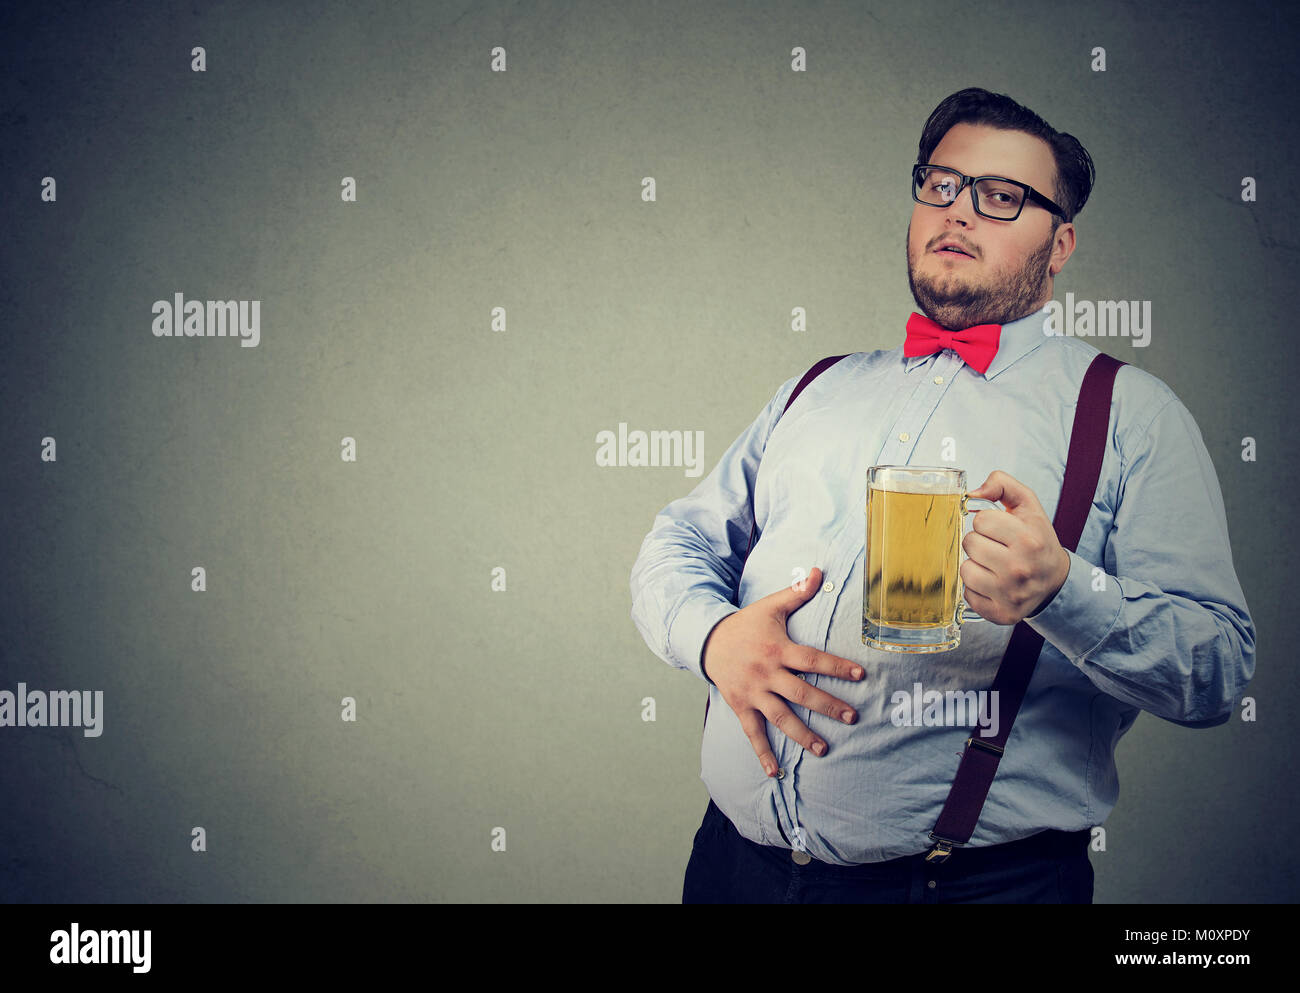 Young overweight man drunk with beer having potbelly. - Stock Image